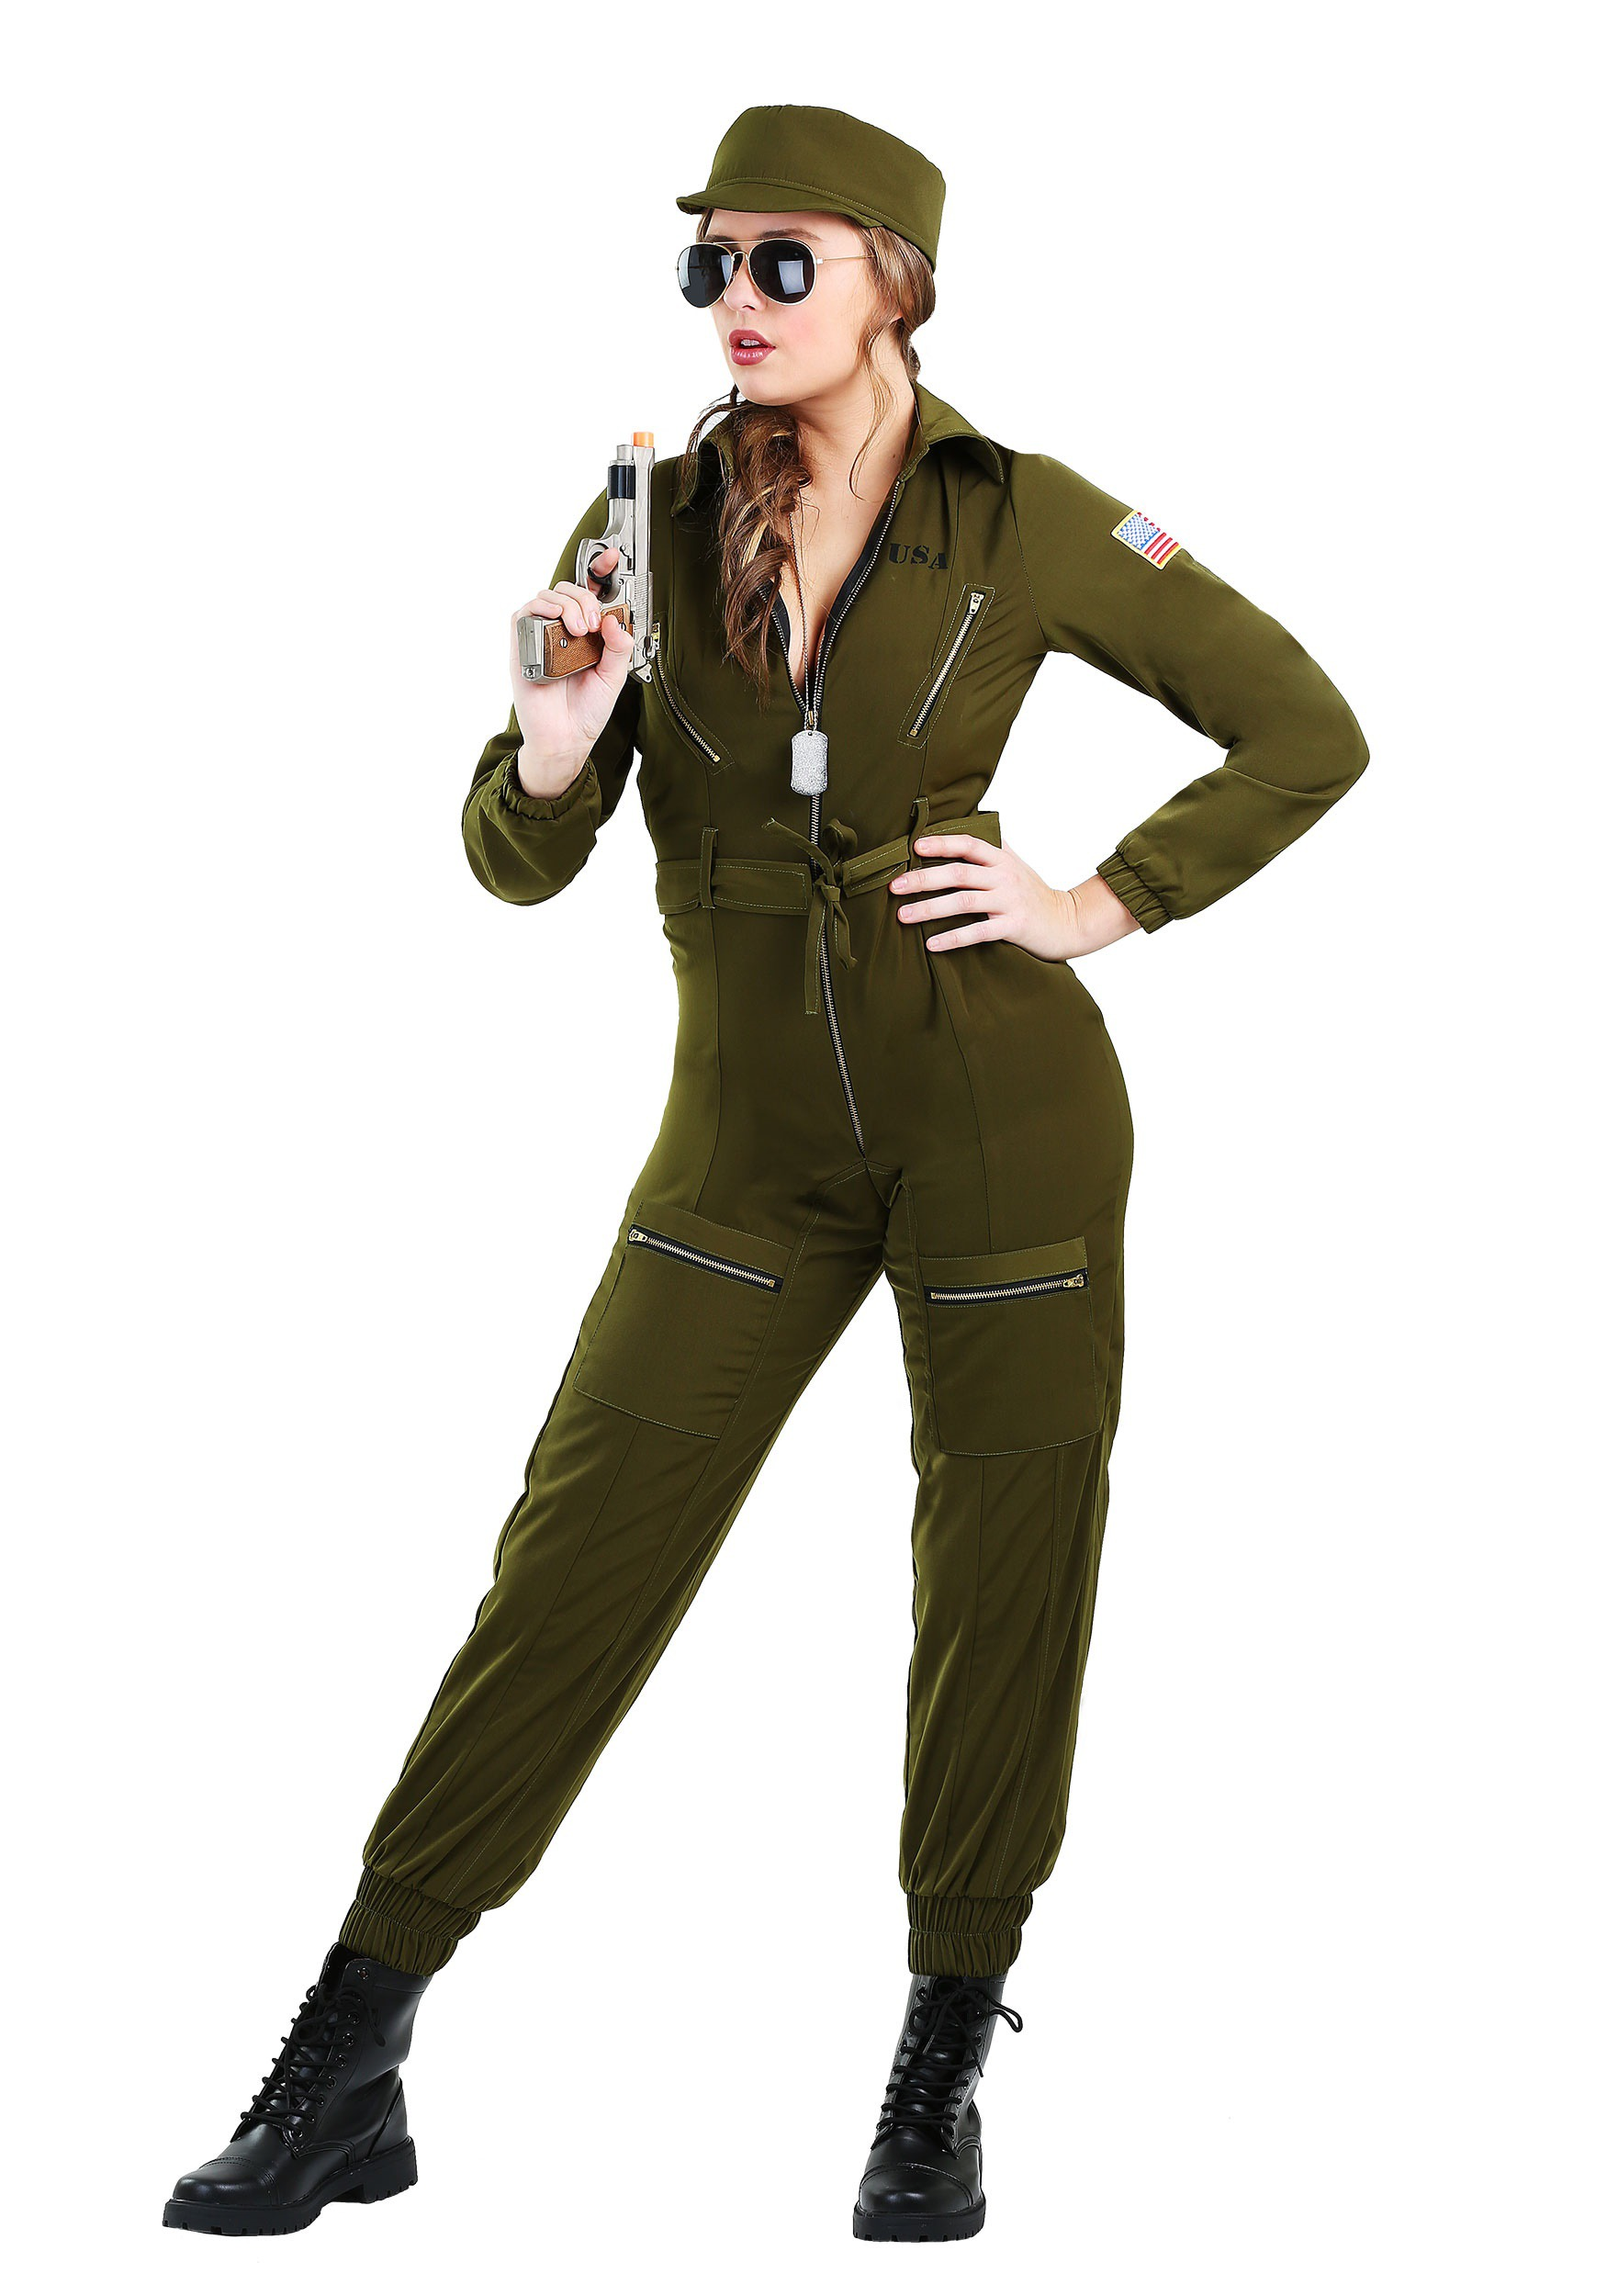 Plus Size Army Flightsuit Costume for Women 1X 2X a5ac2ac09